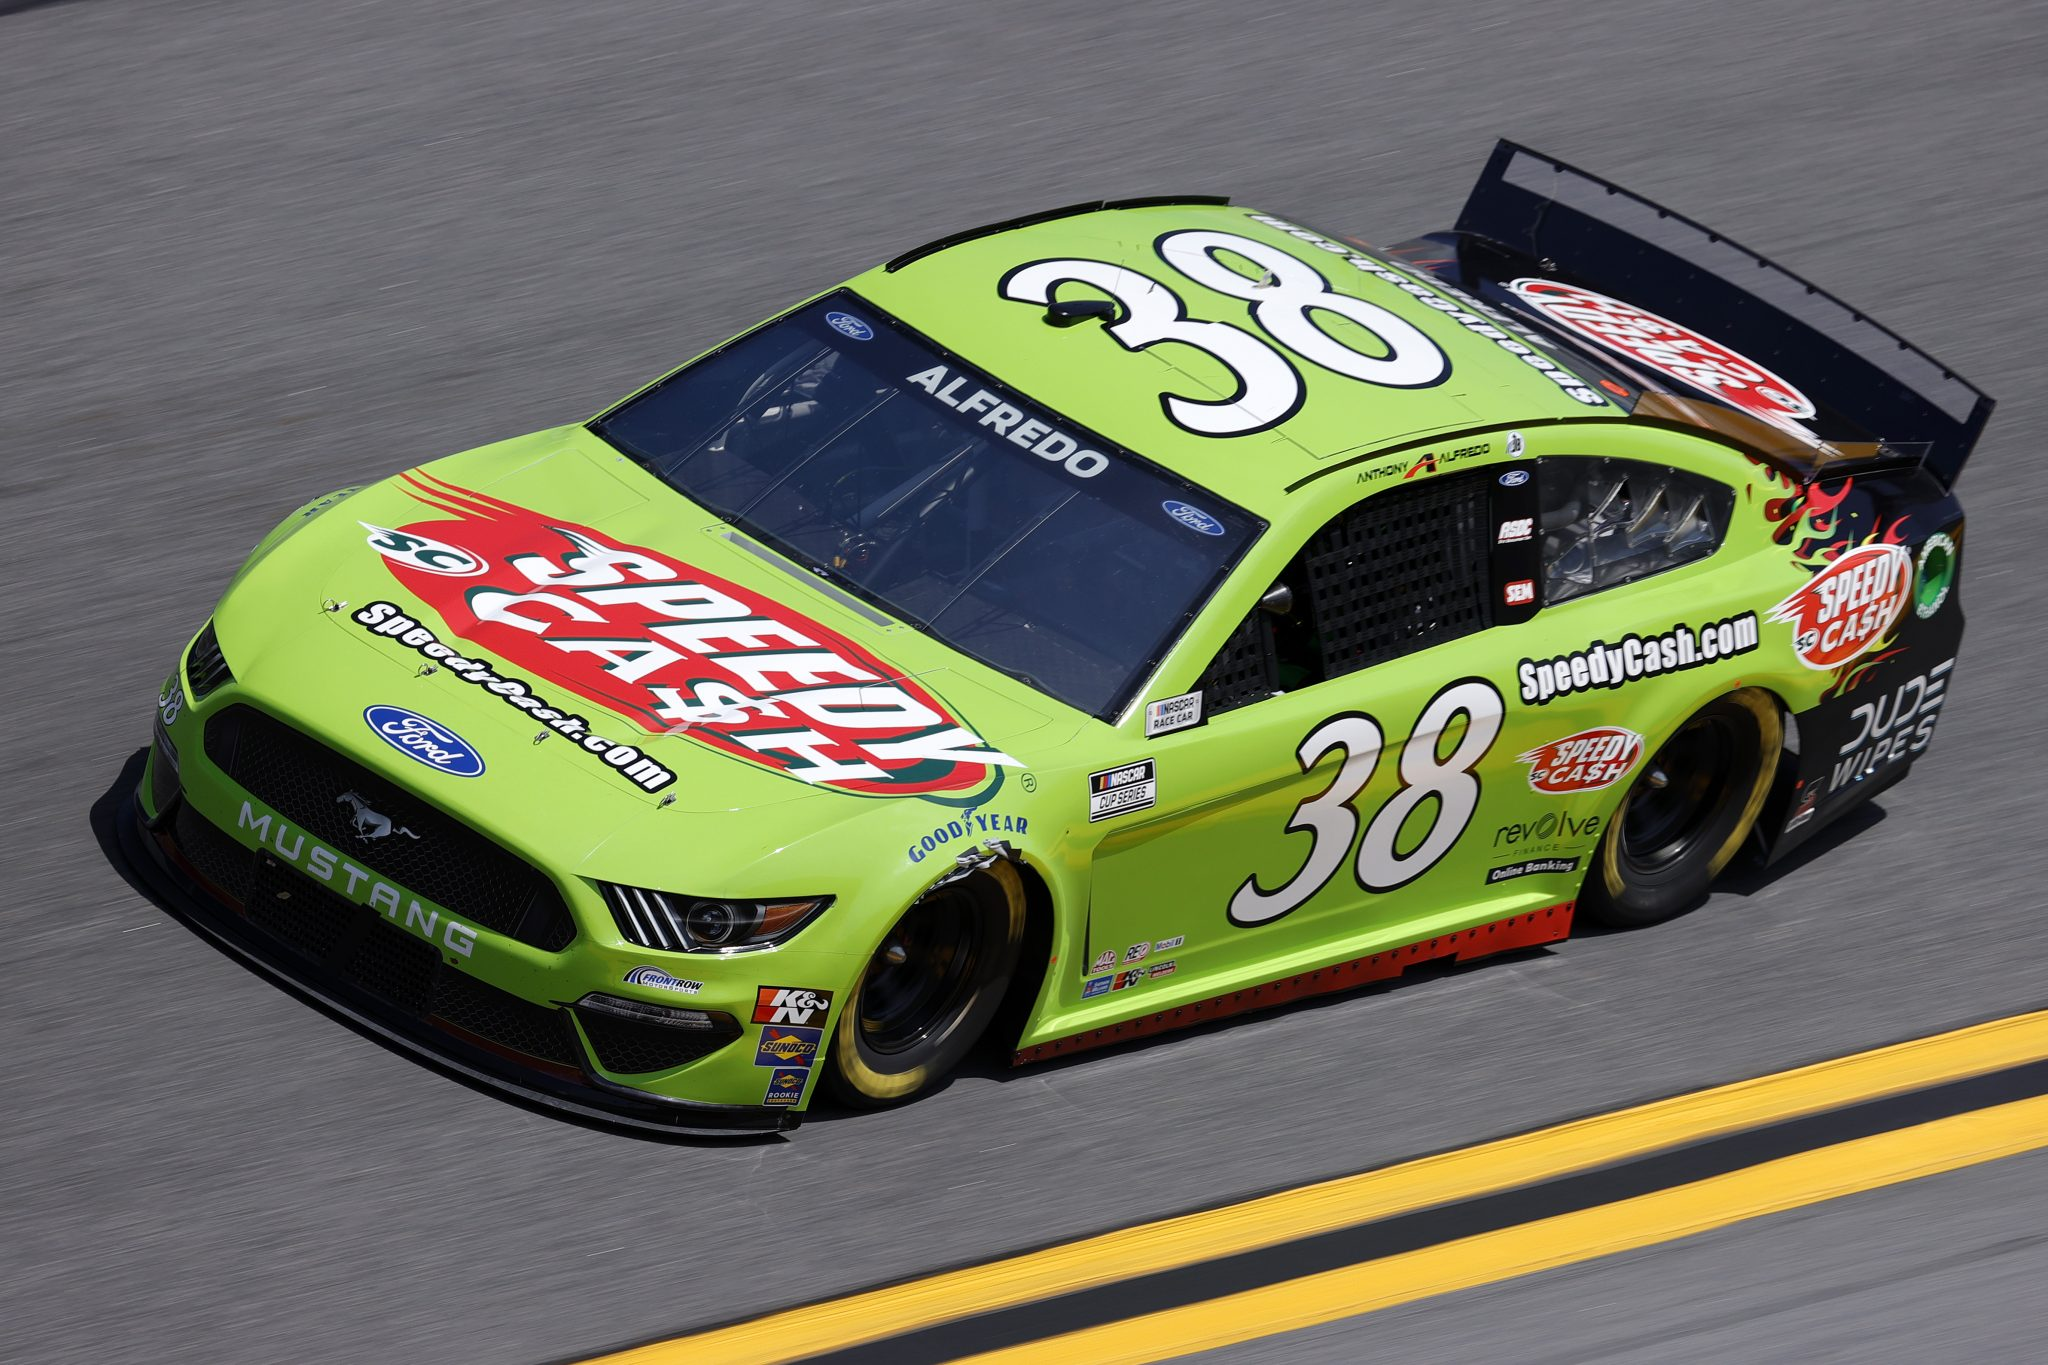 DAYTONA BEACH, FLORIDA - FEBRUARY 10: Anthony Alfredo, driver of the #38 Speedy Cash Ford, drives during practice for the NASCAR Cup Series 63rd Annual Daytona 500 at Daytona International Speedway on February 10, 2021 in Daytona Beach, Florida. (Photo by Jared C. Tilton/Getty Images) | Getty Images